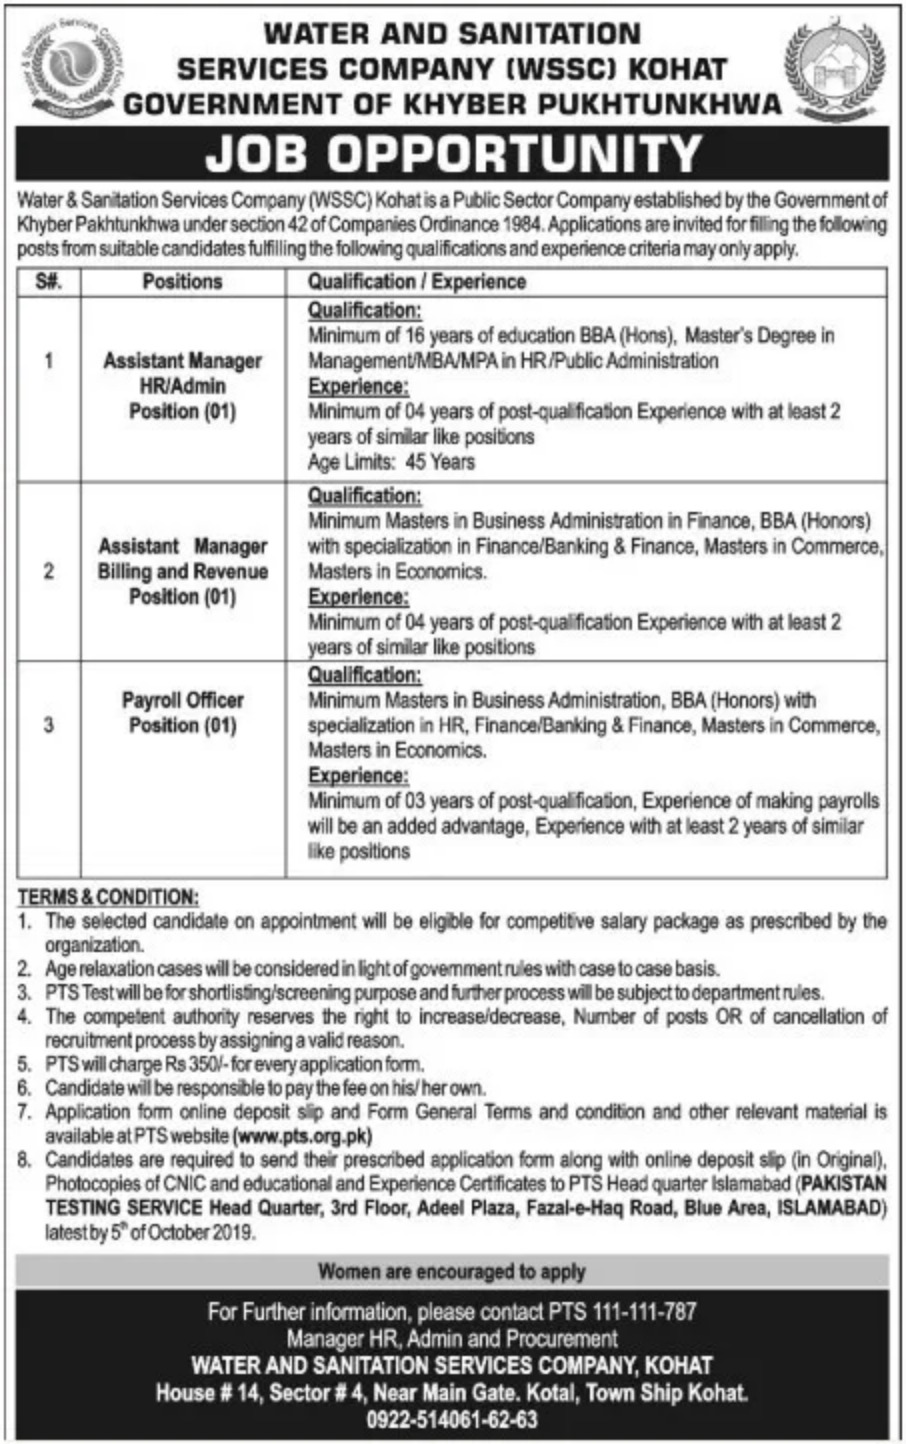 WSSC Kohat Jobs 2019 PTS Application Form